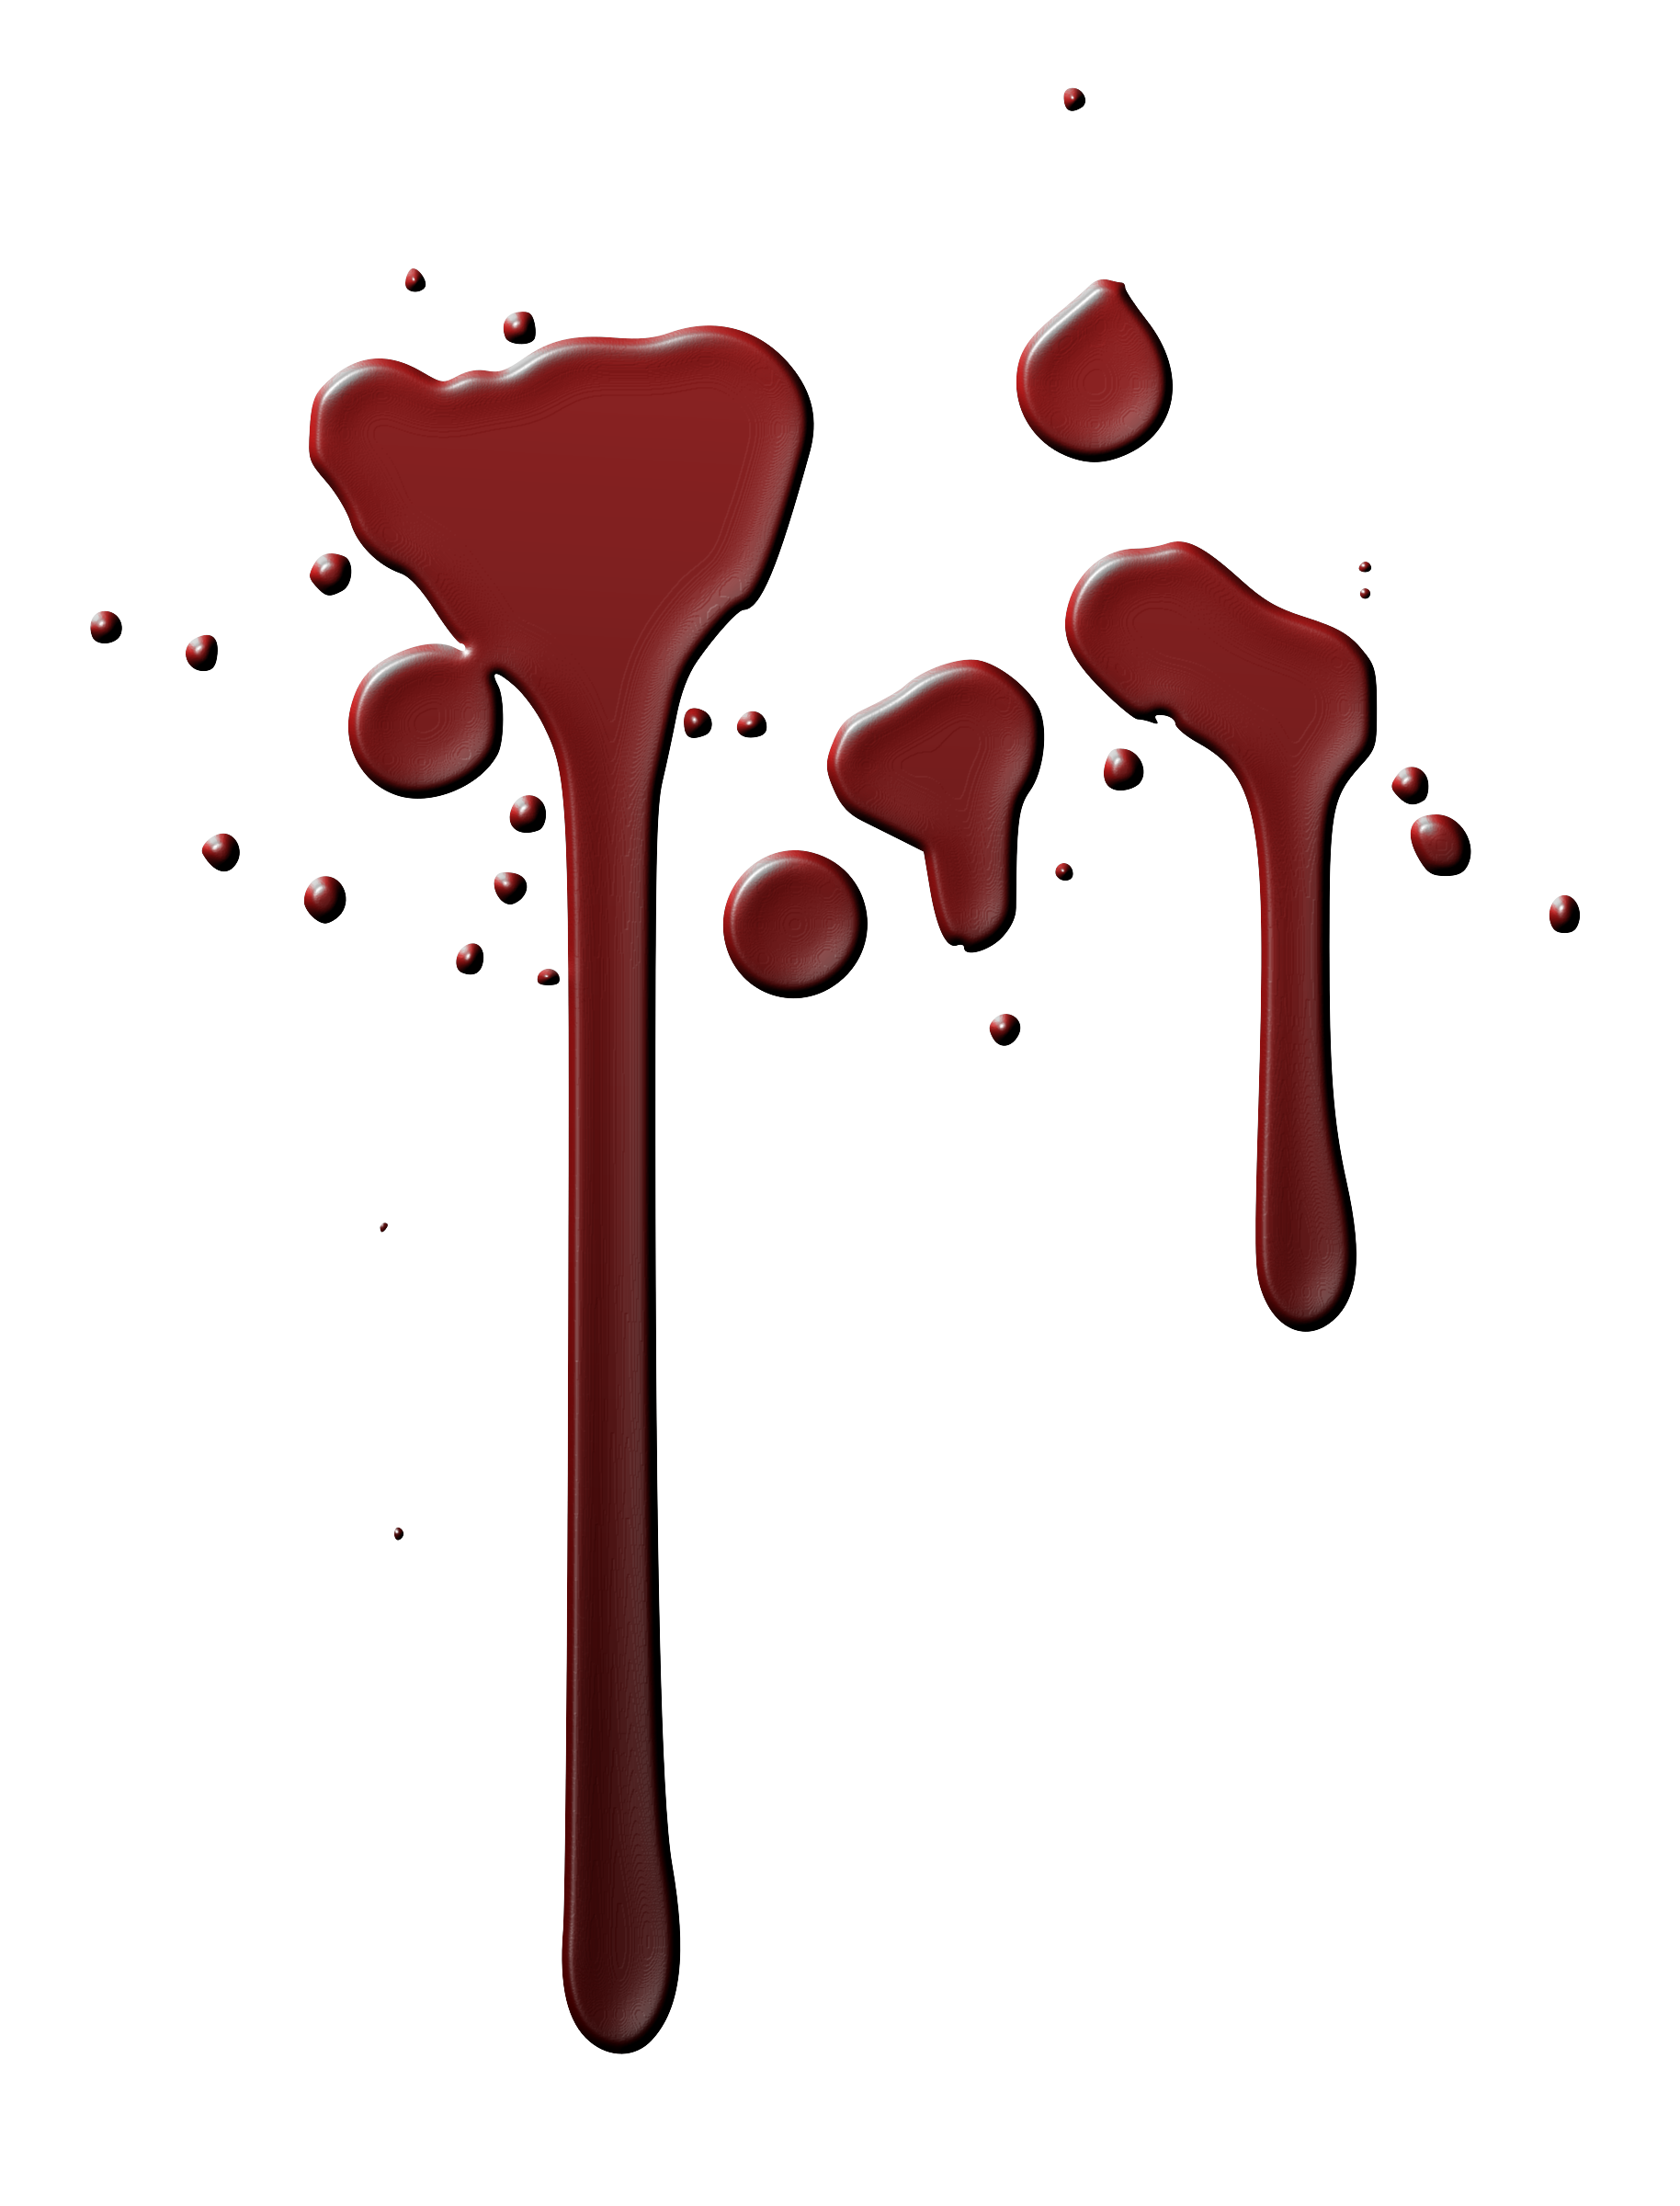 Clipart big image. Blood drip png